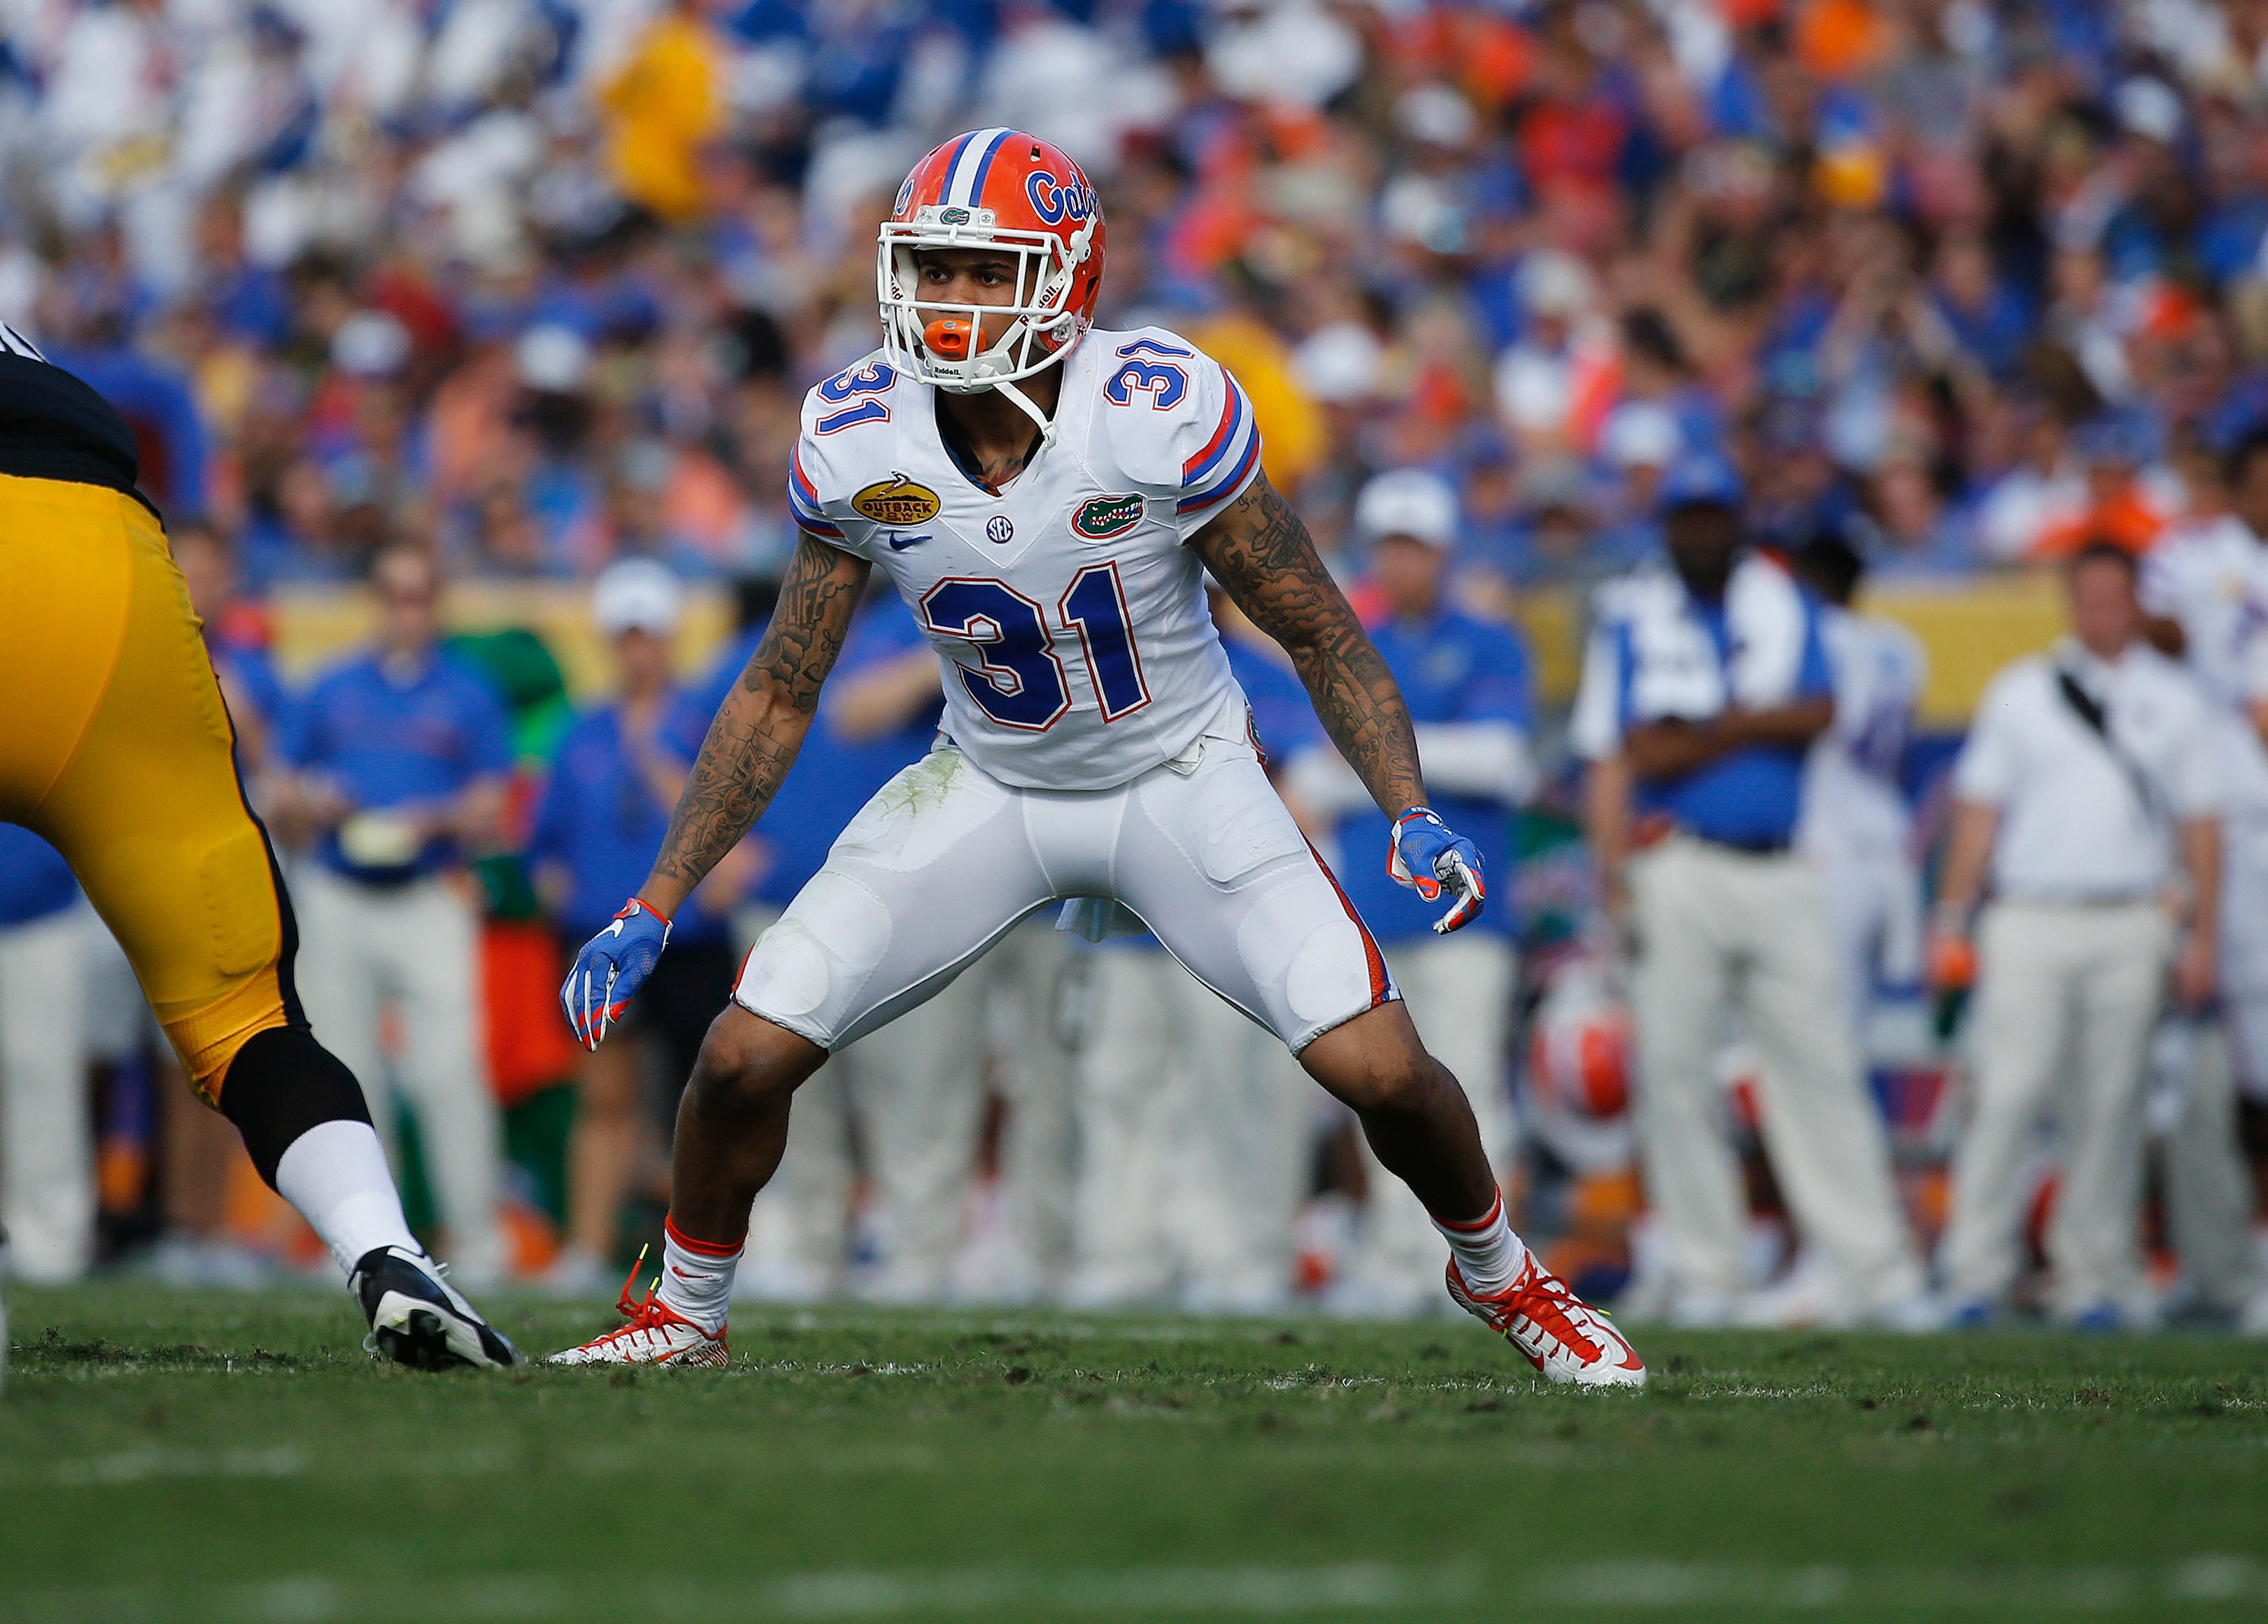 9839775-ncaa-football-outback-bowl-florida-vs-iowa